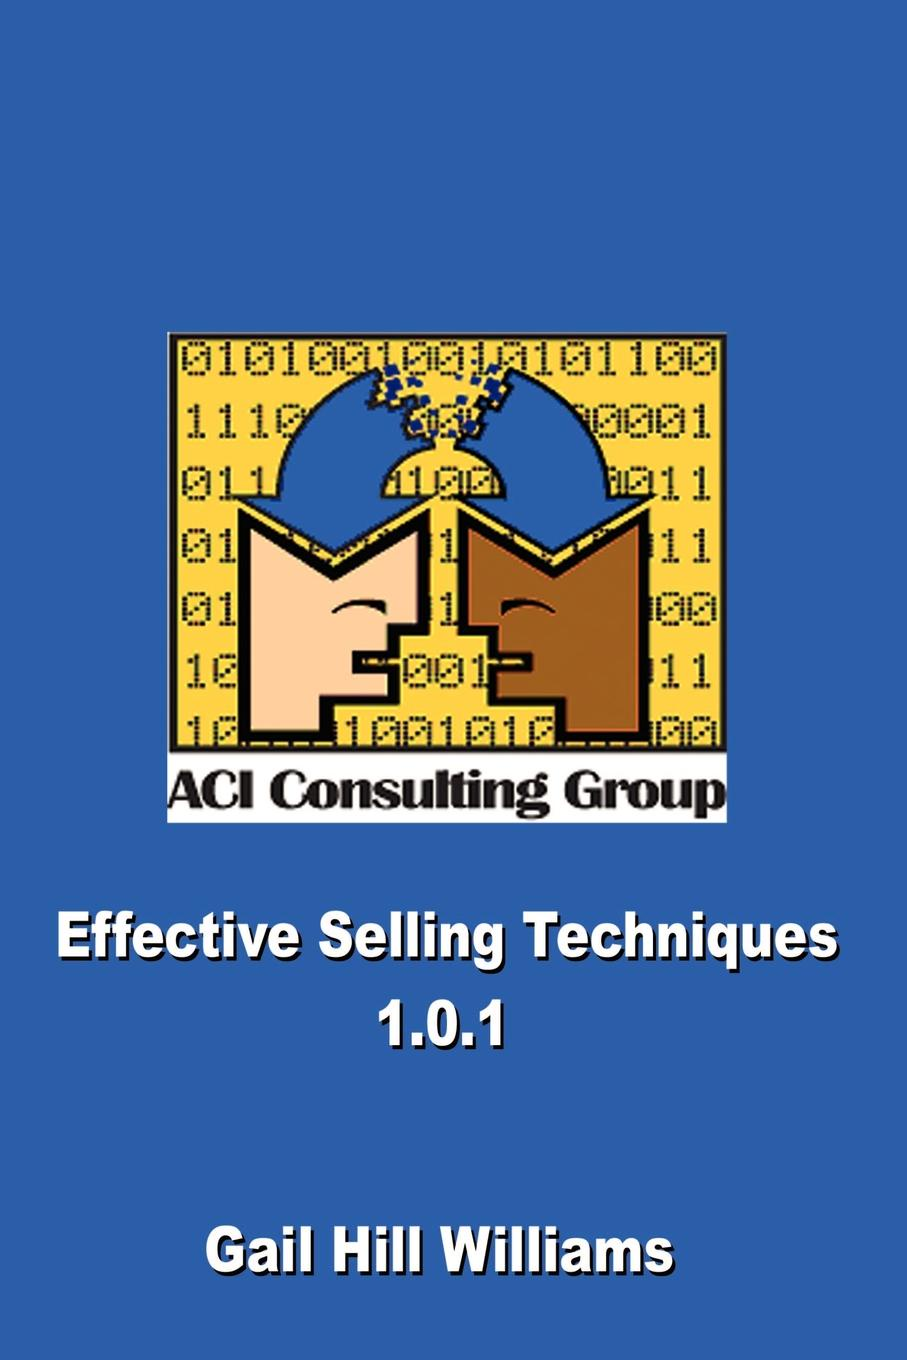 Gail Hill Williams Effective Selling Techniques 1.0.1